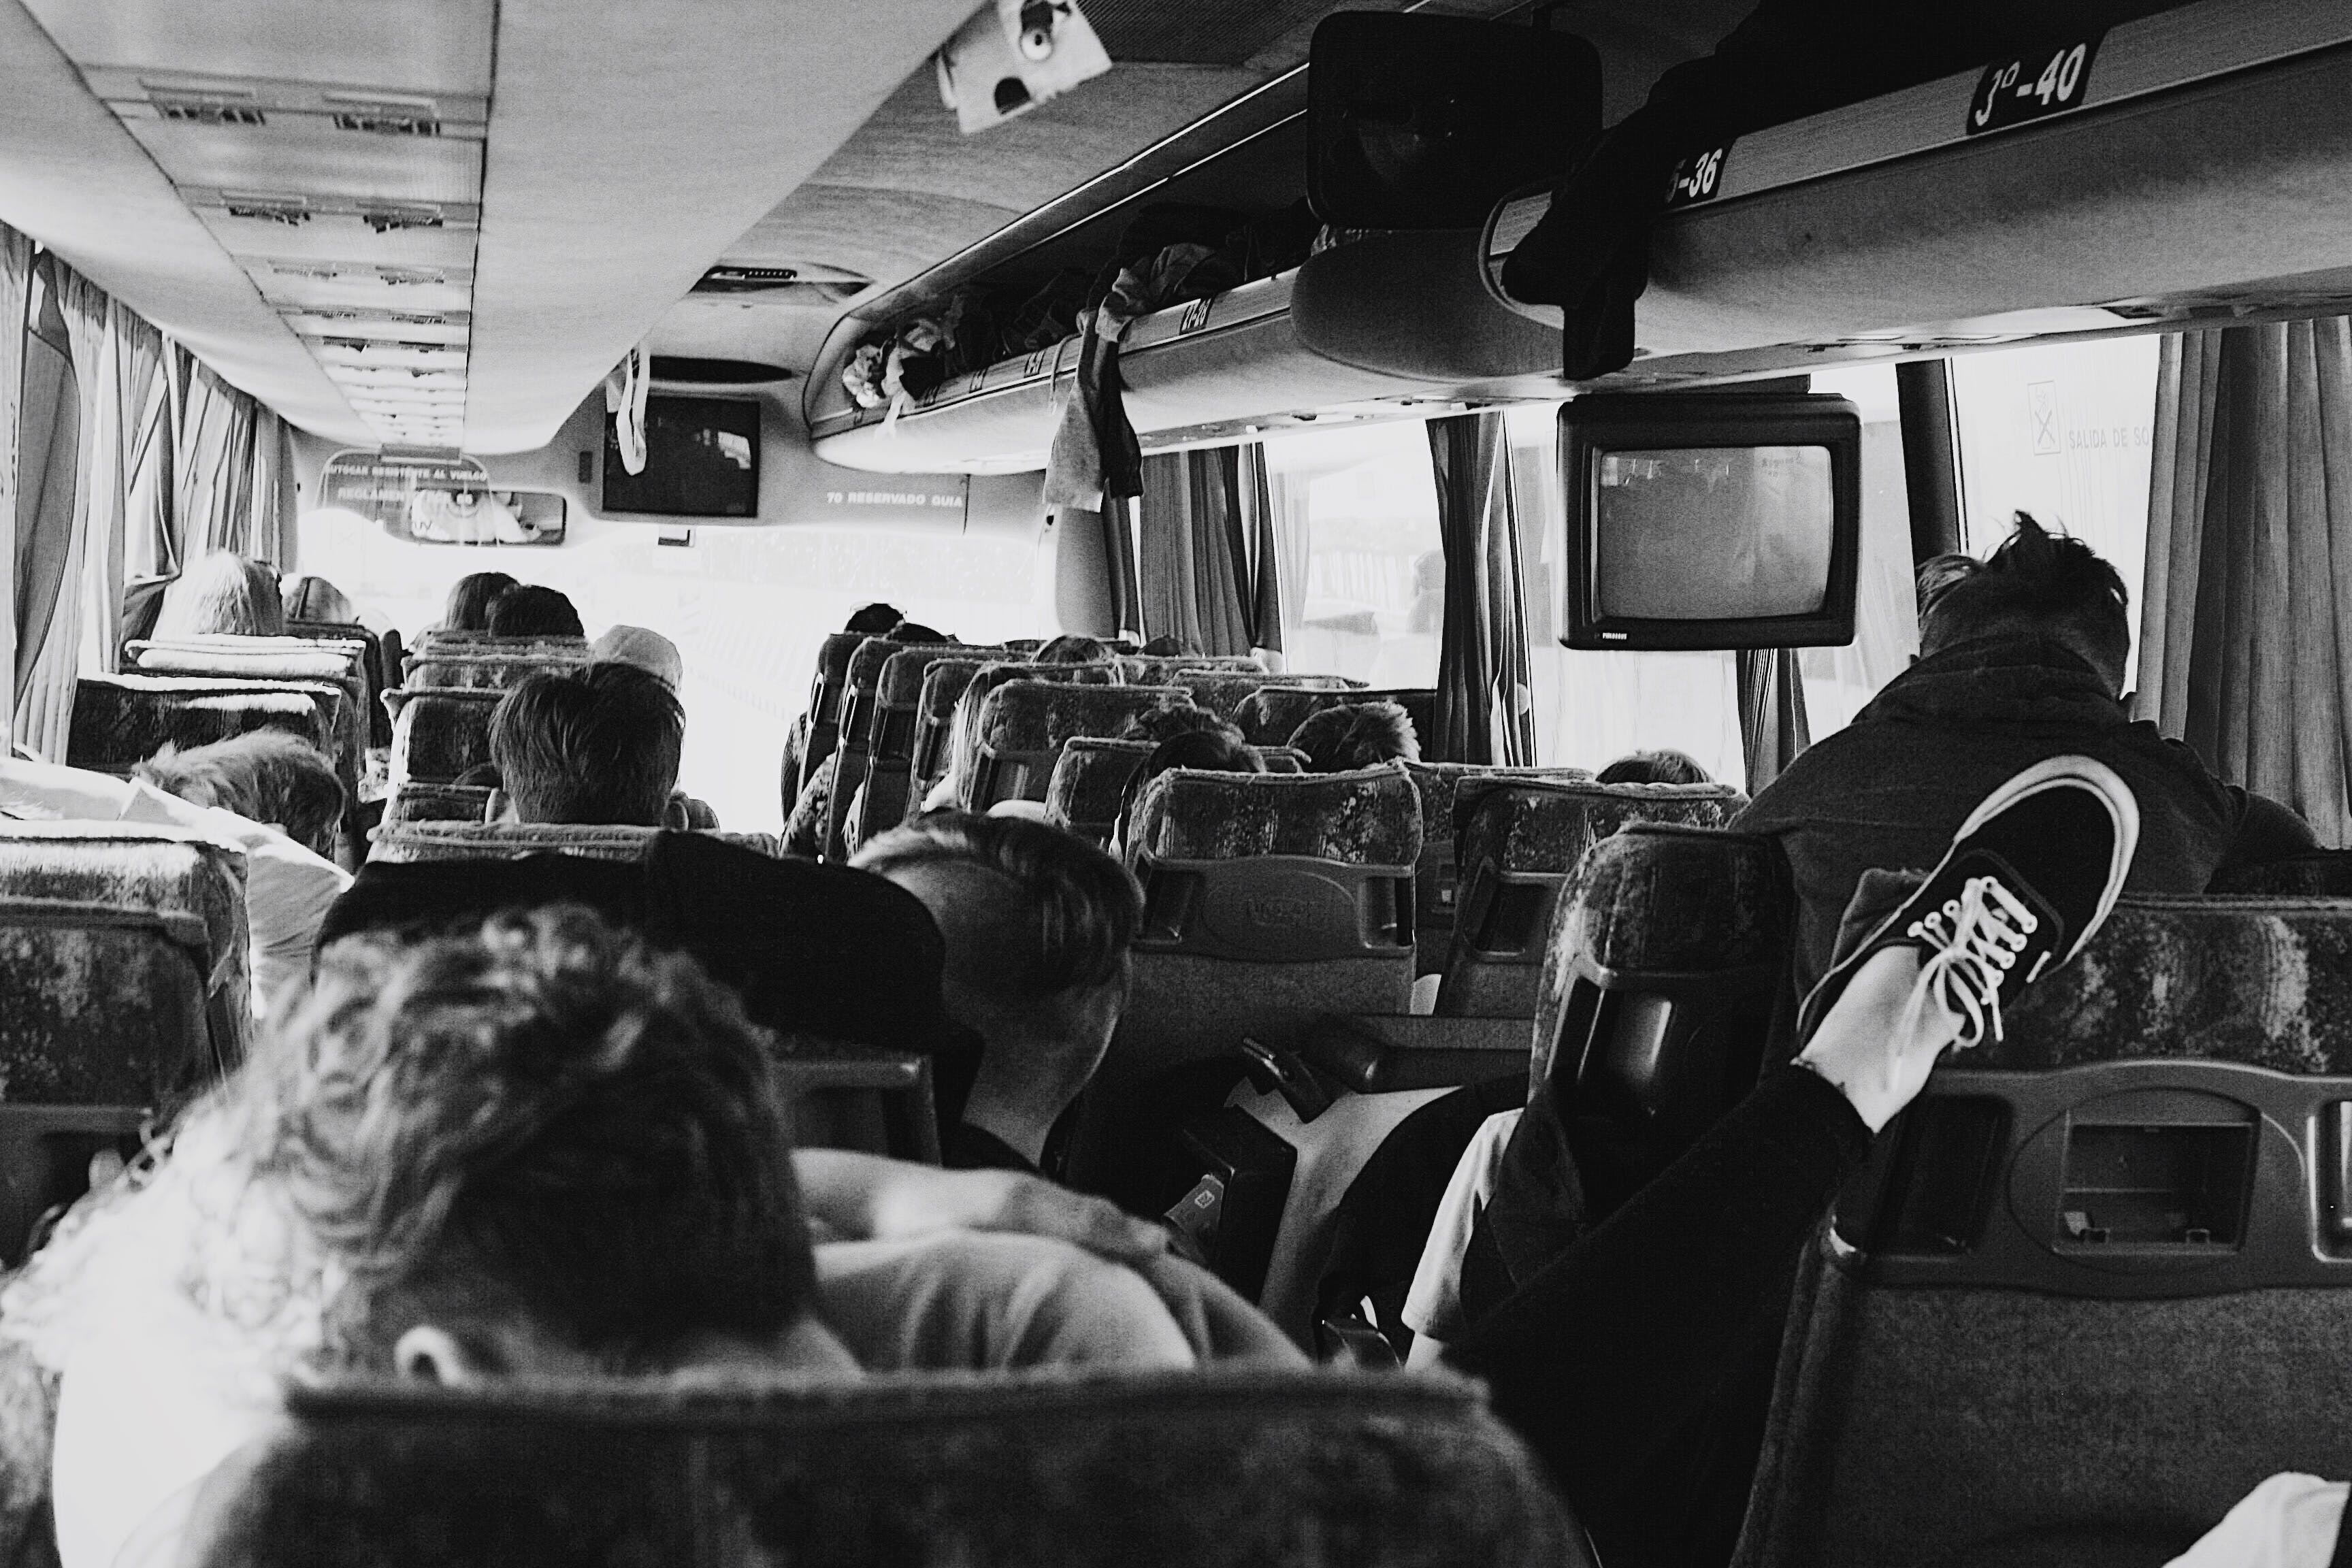 Grayscale Photo of People on a Bus